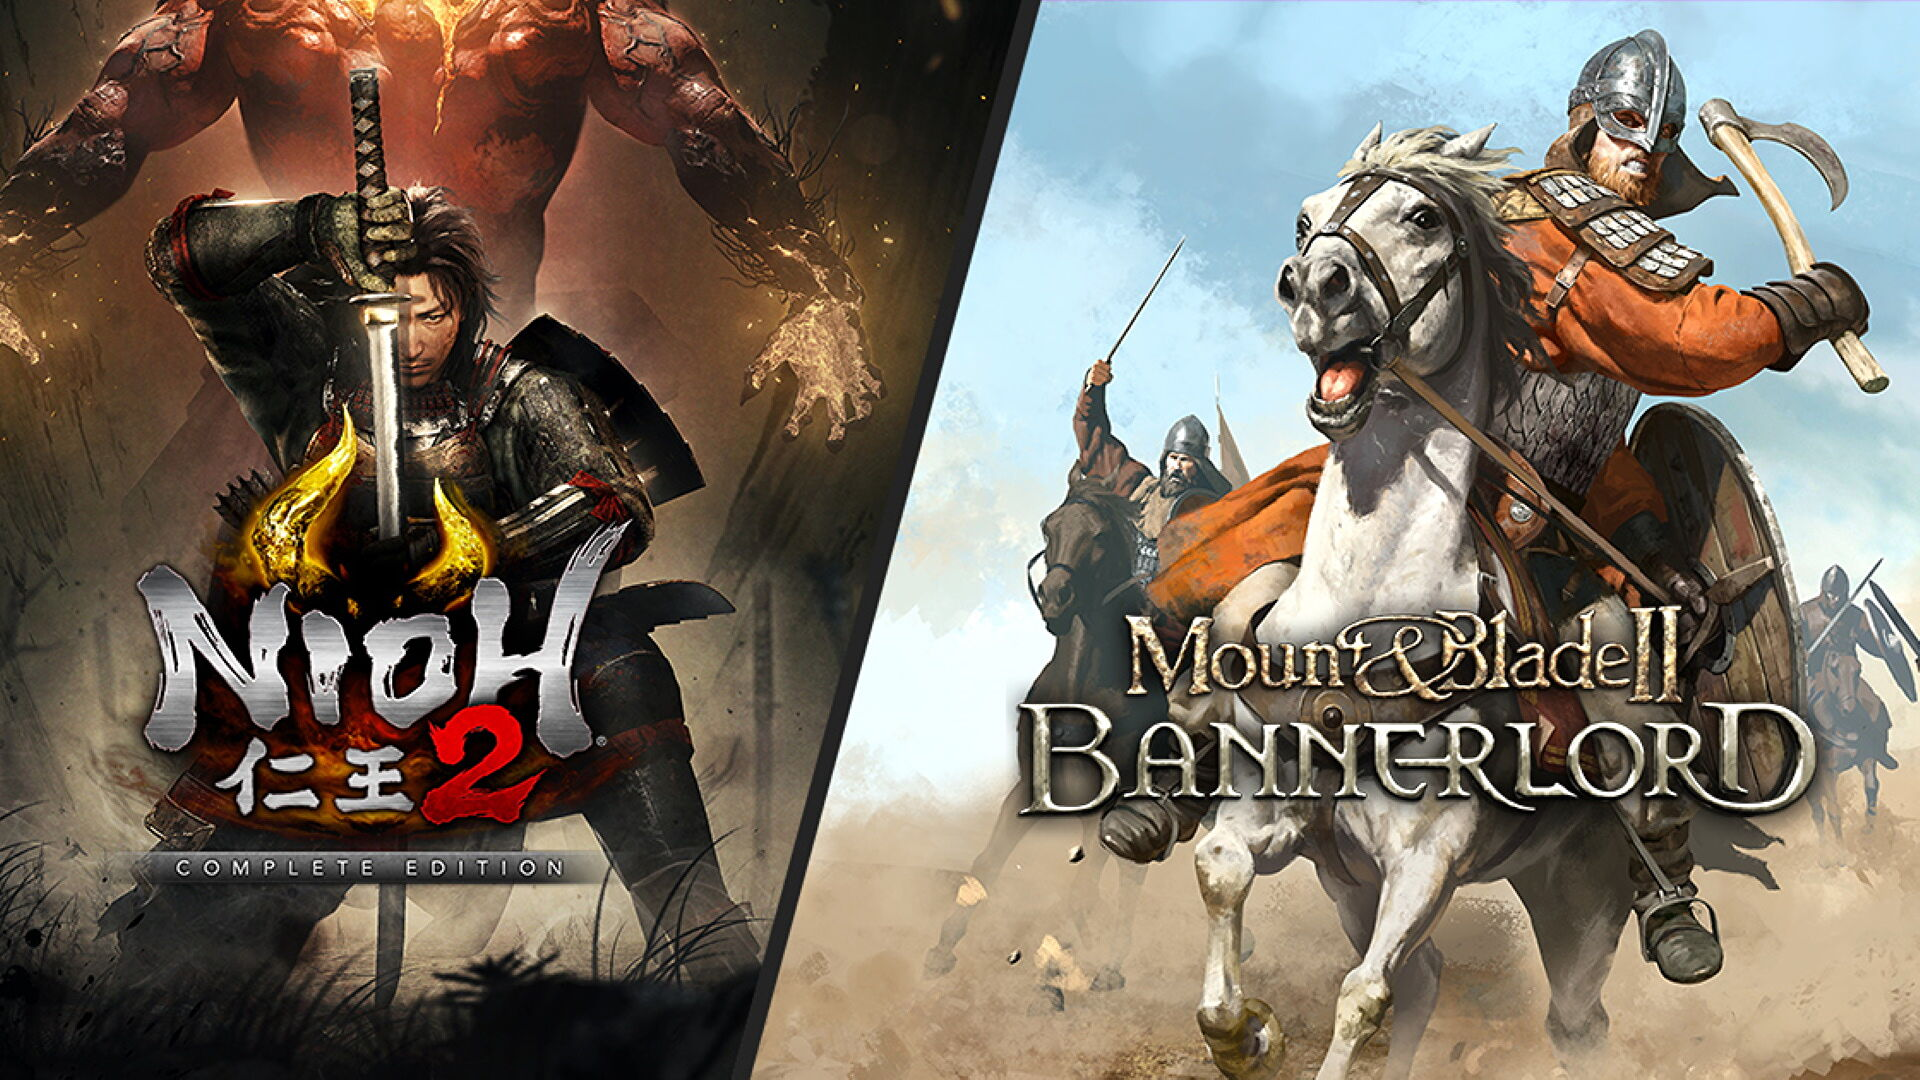 Nioh 2 and Mount & Blade II: Bannerlord get DLSS support